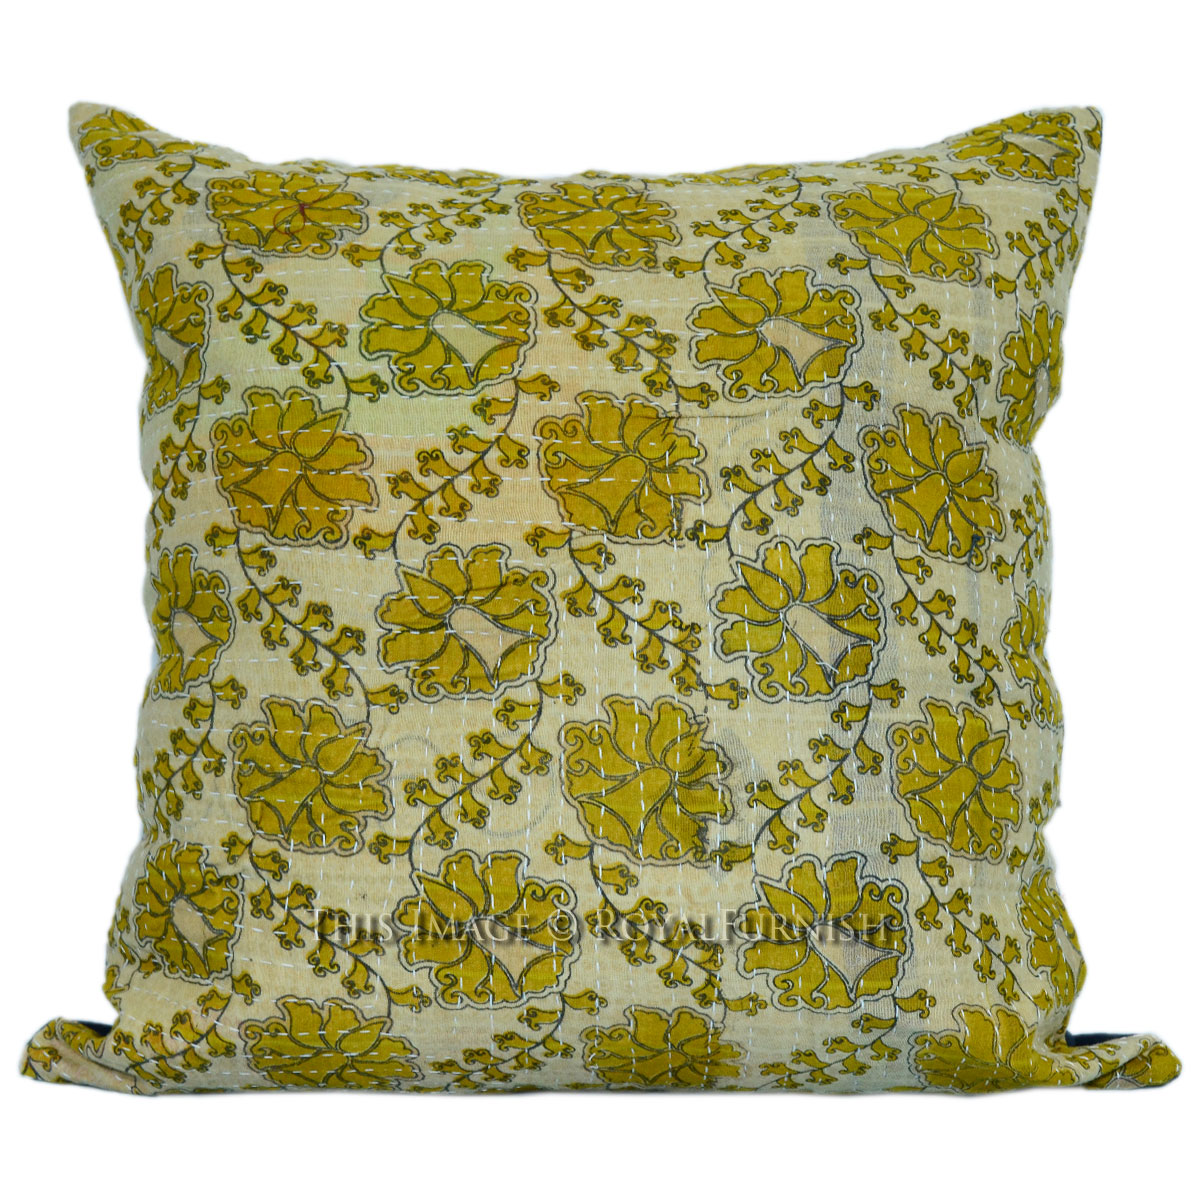 Vintage Decorative Throw Pillows : 16x16 Decorative Vintage Kantha Quilt Square Pillow Case - RoyalFurnish.com